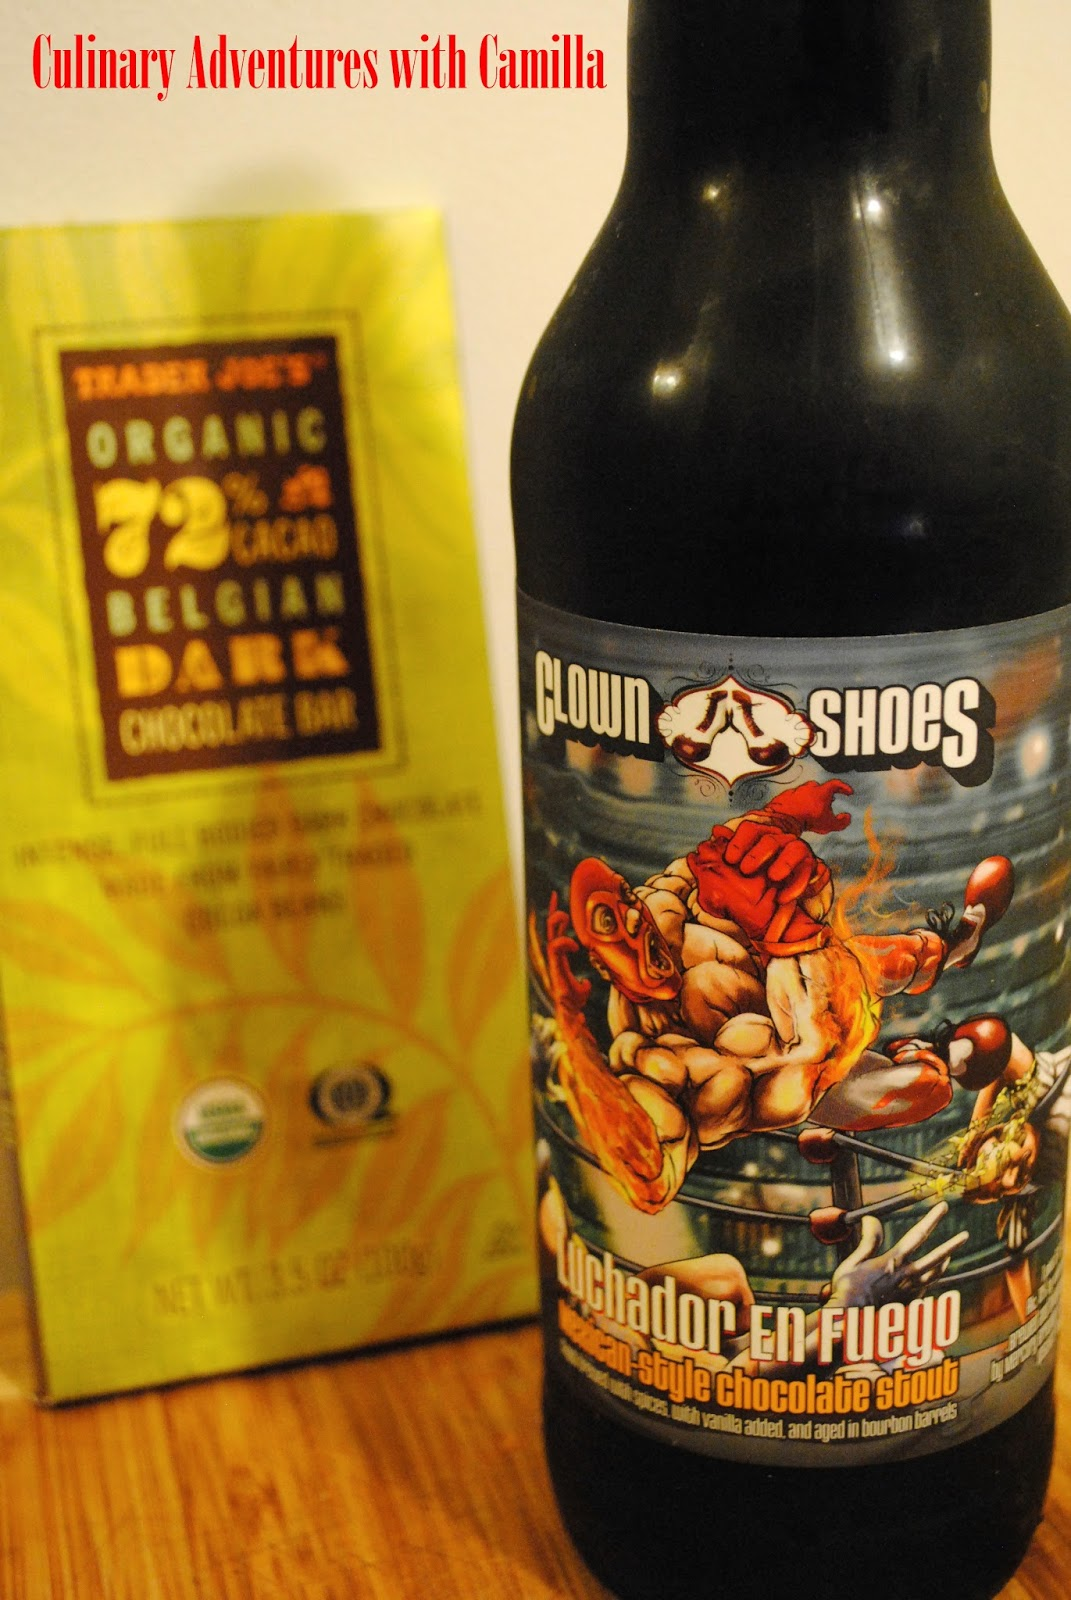 american craft beer week: clown shoes' luchador en fuego